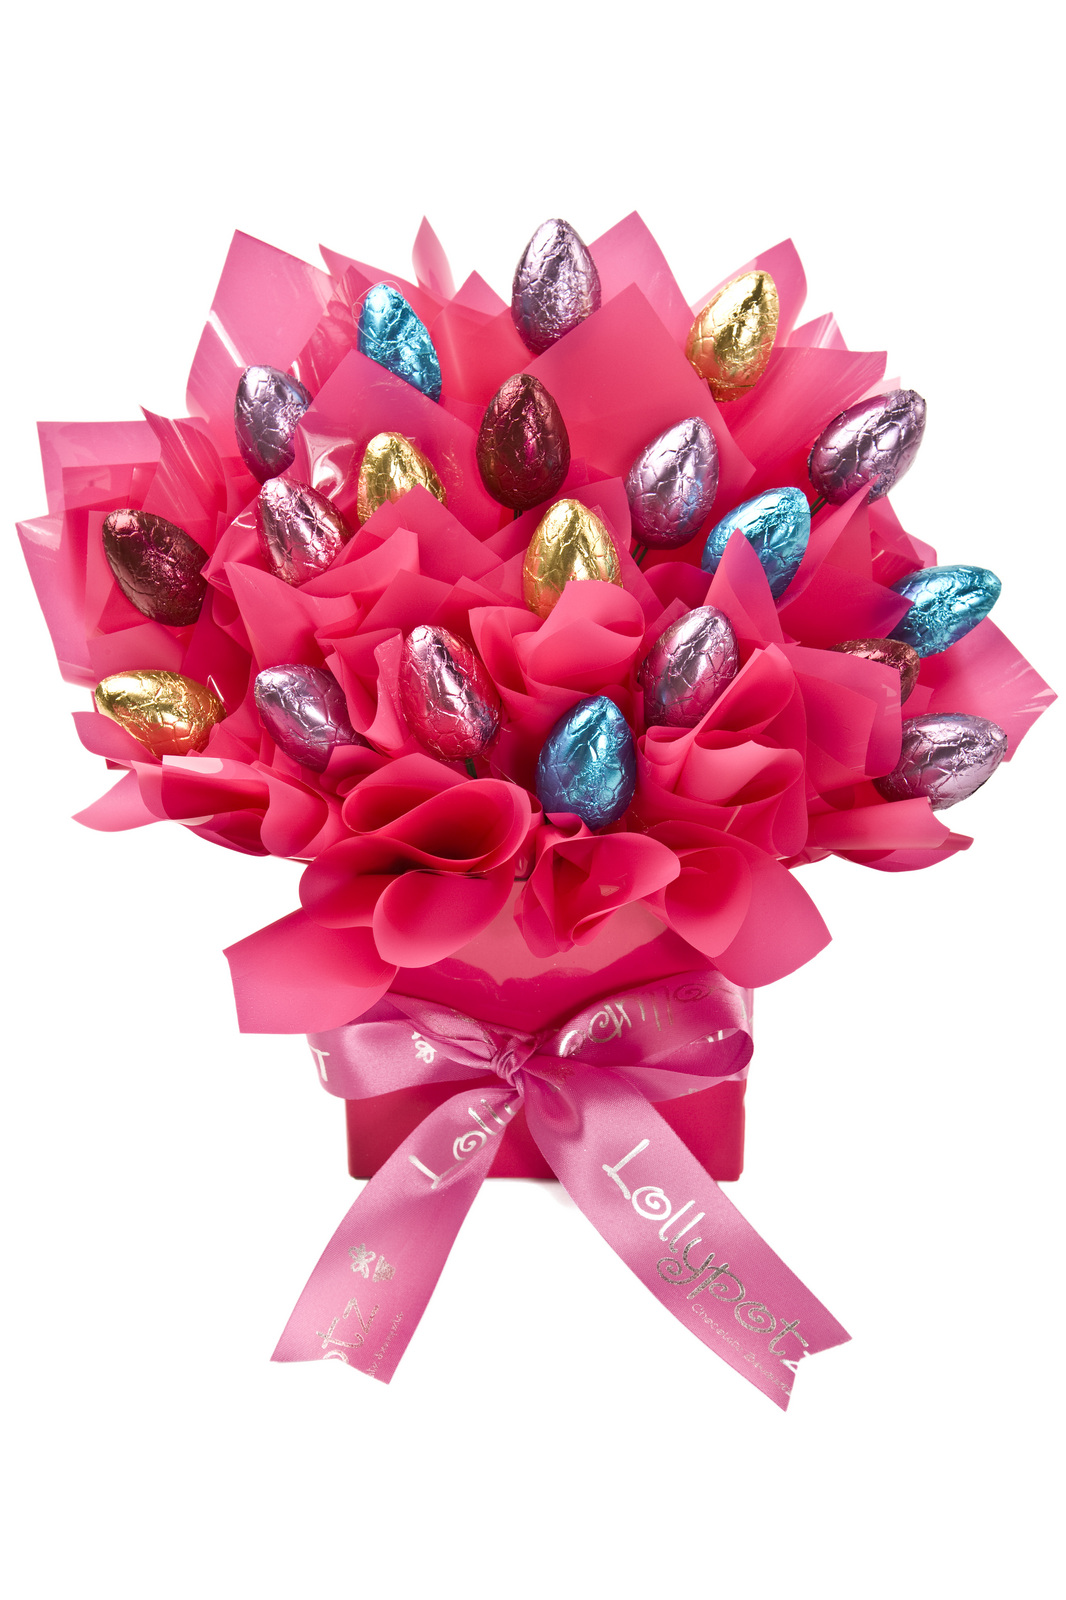 Lollypotz Chocolate Bouquets Gifts